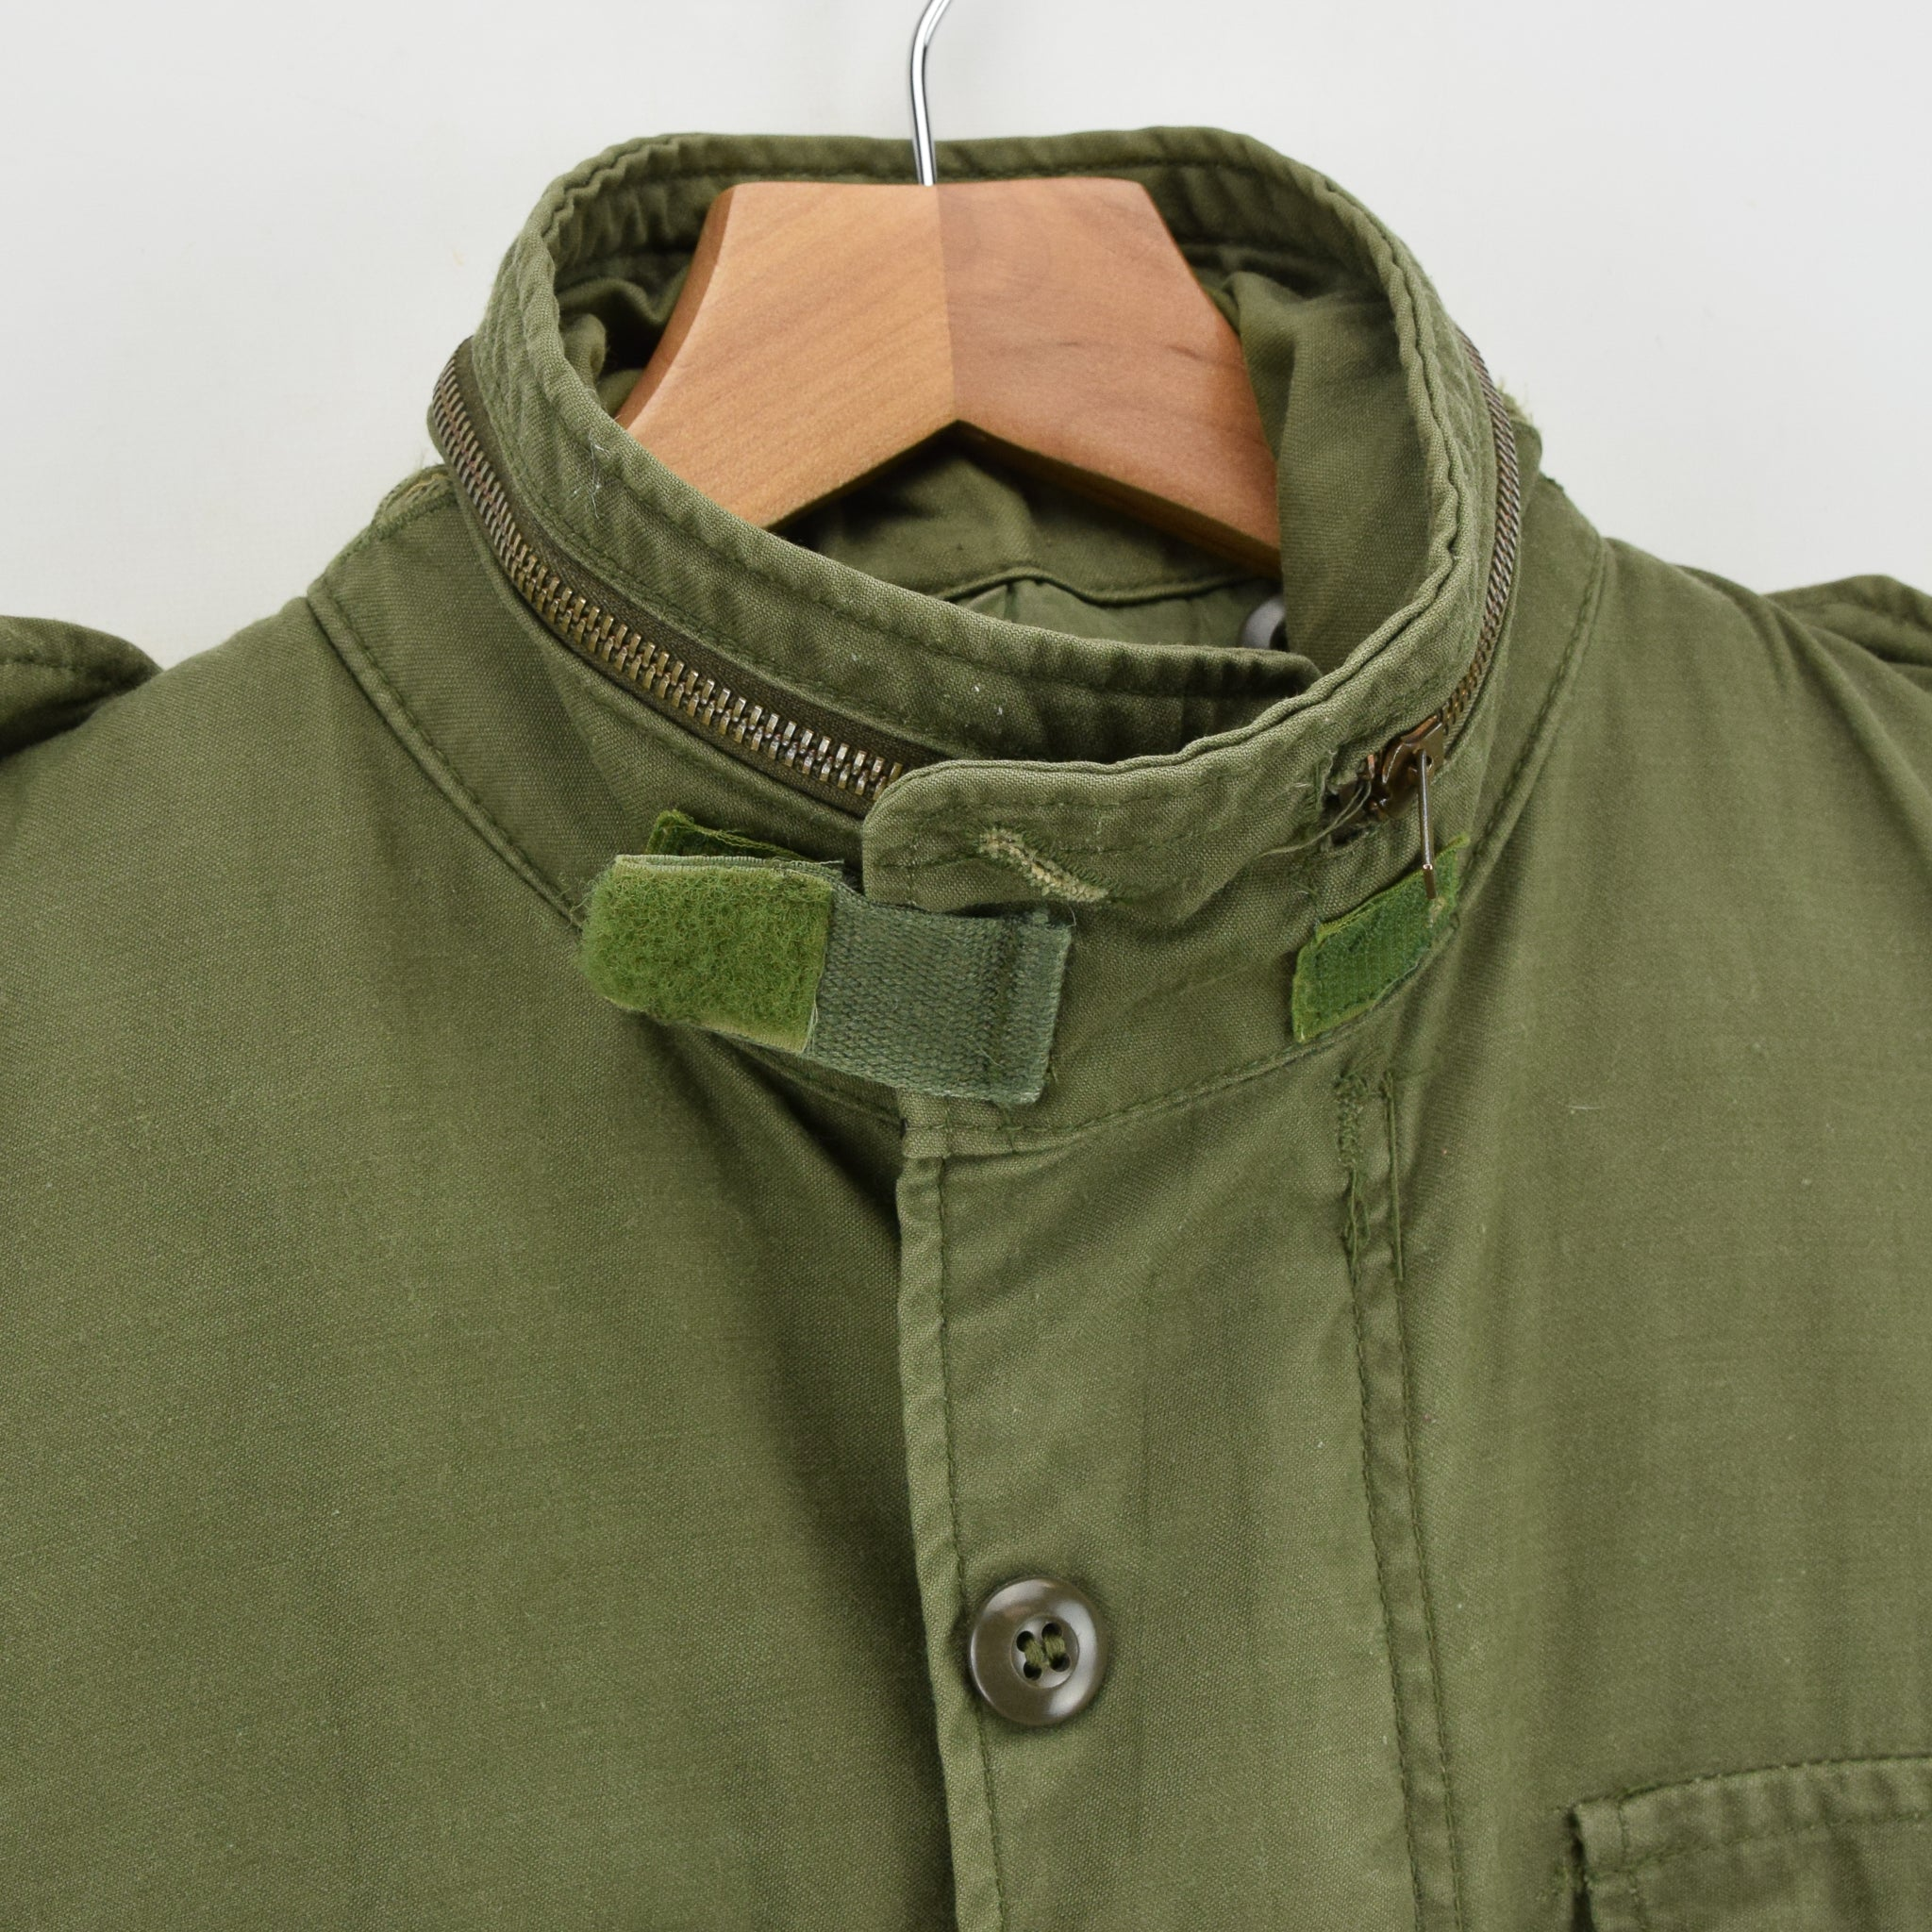 Vintage 80s Alpha Industries M-65 Green Coat Cold Weather Man's Field Jacket S collar